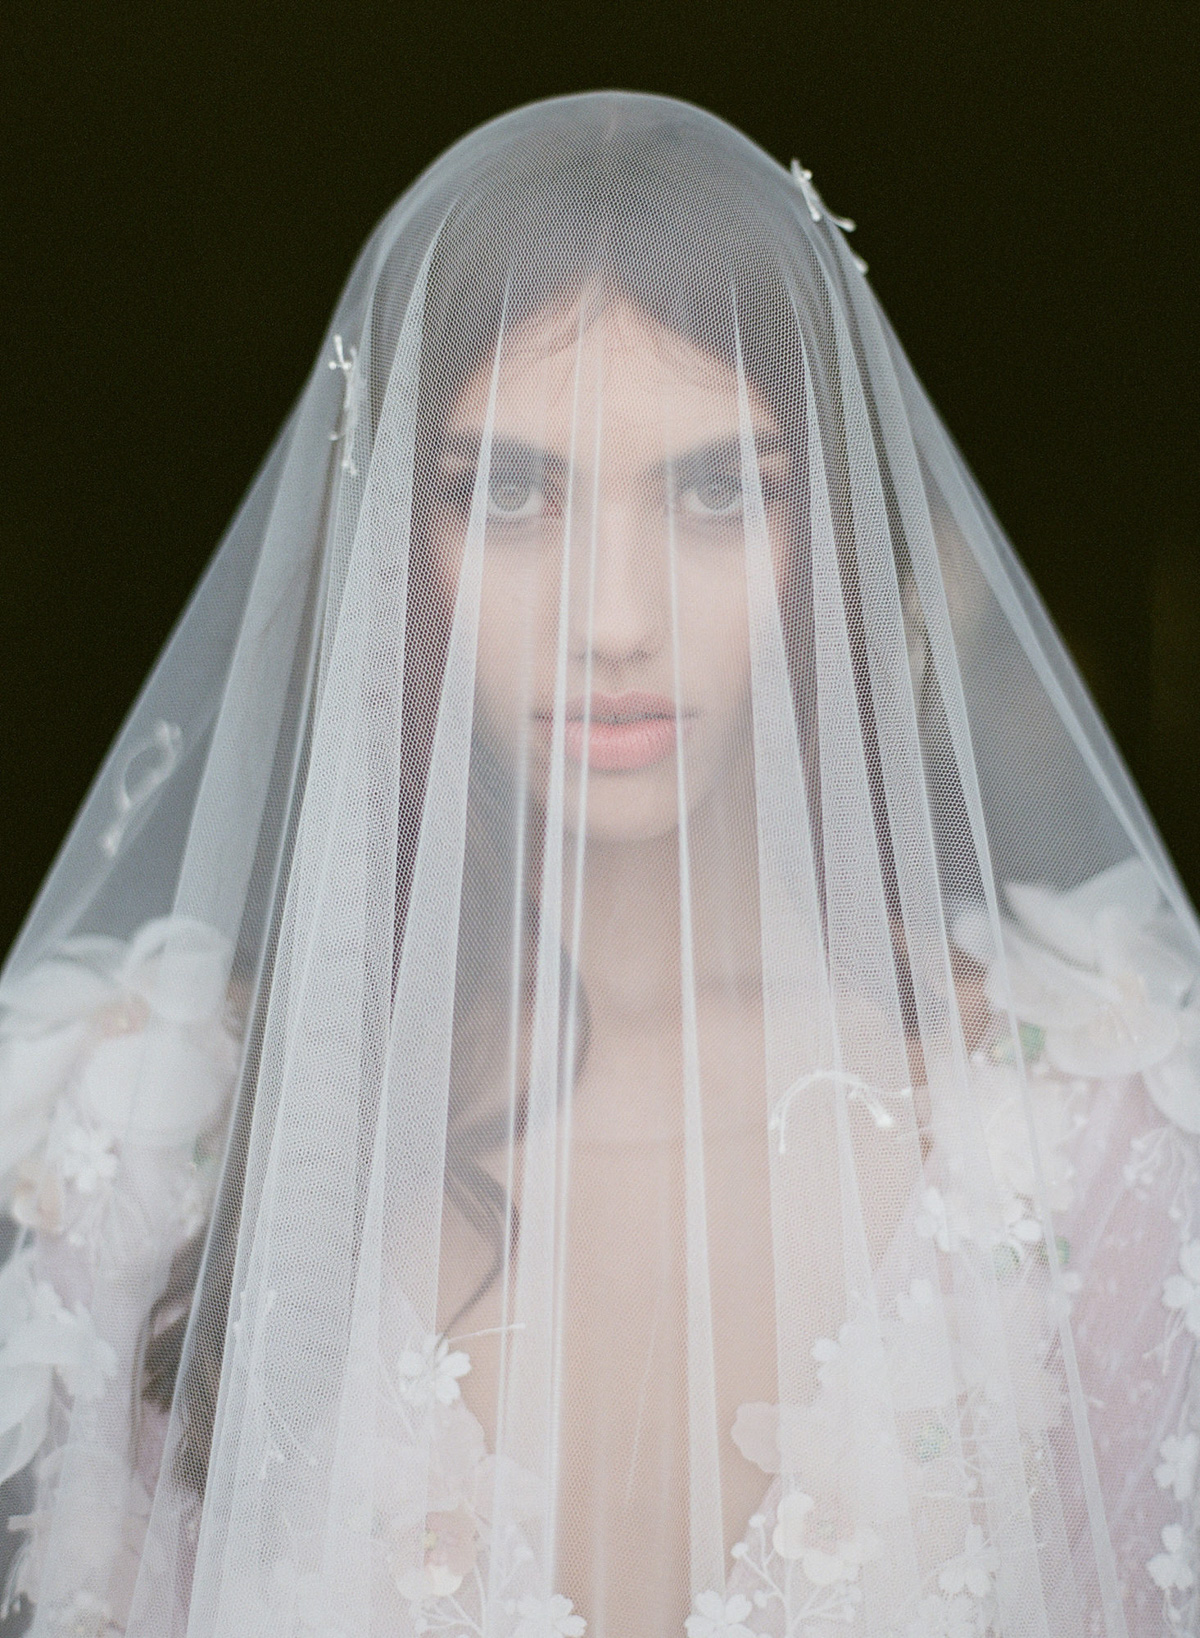 Classic portrait of bride wearing Mantilla veil by Gianluca Adovastio - Italy